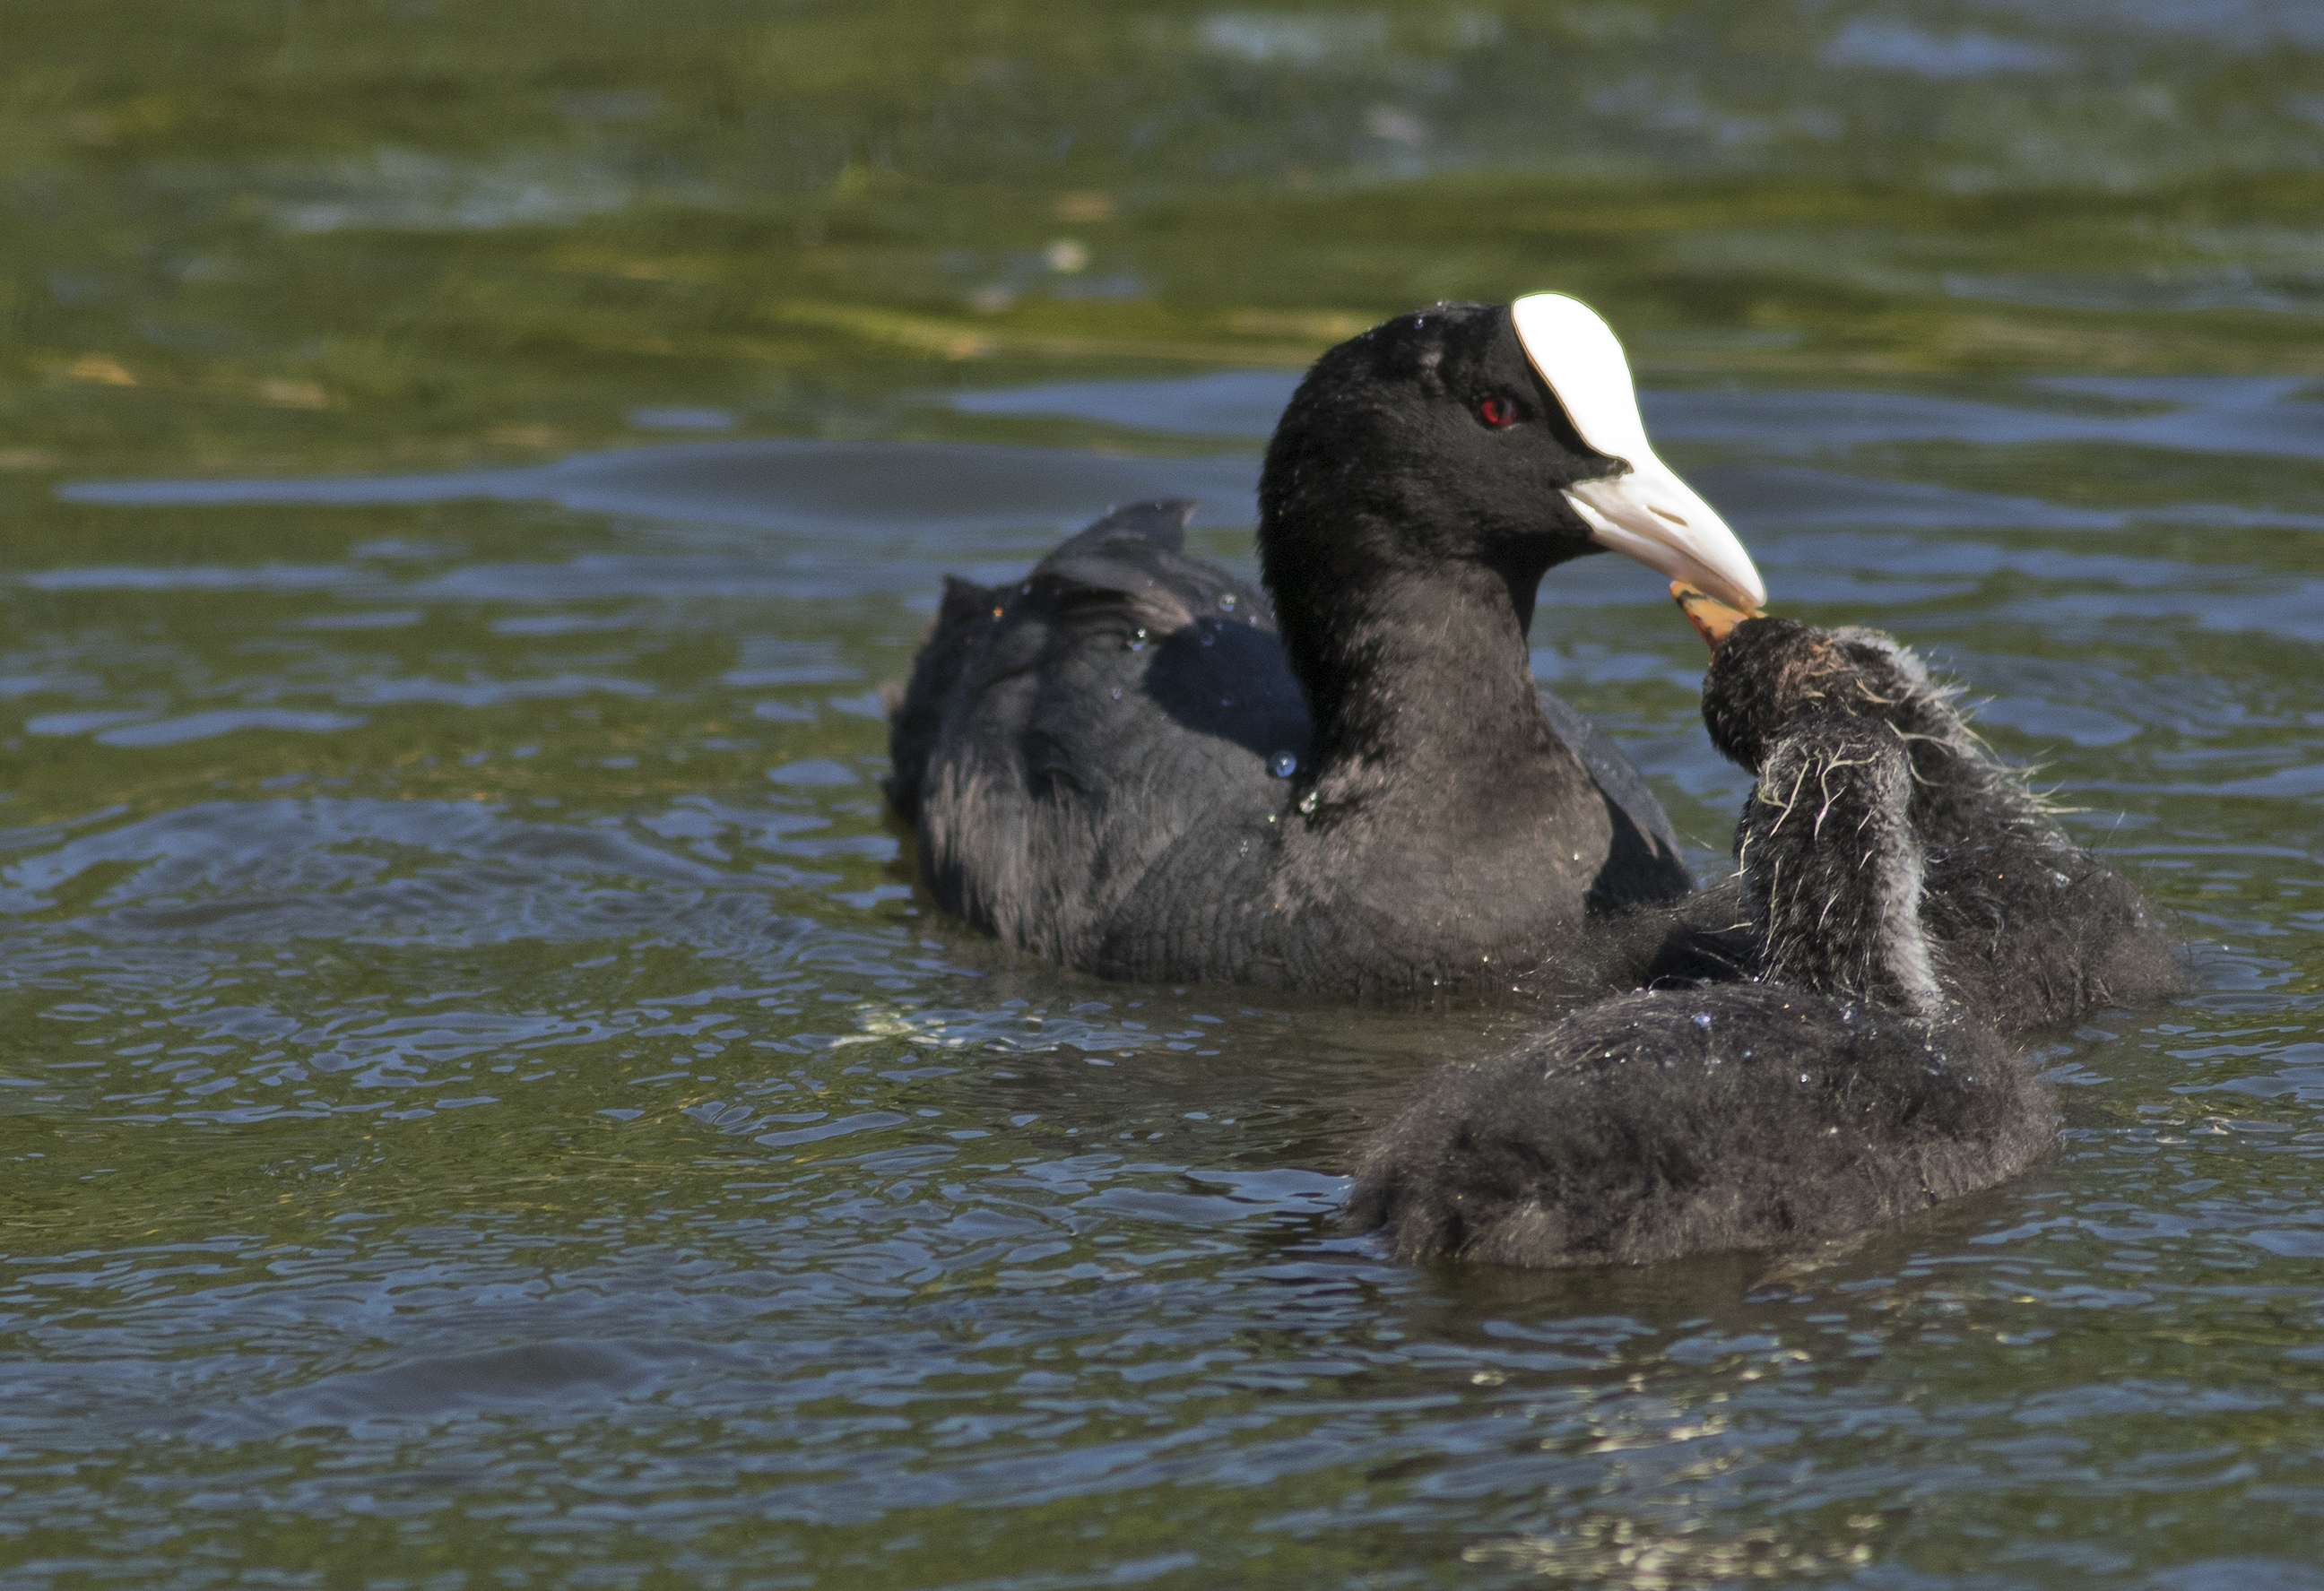 Attentive mother coot with young cootlet